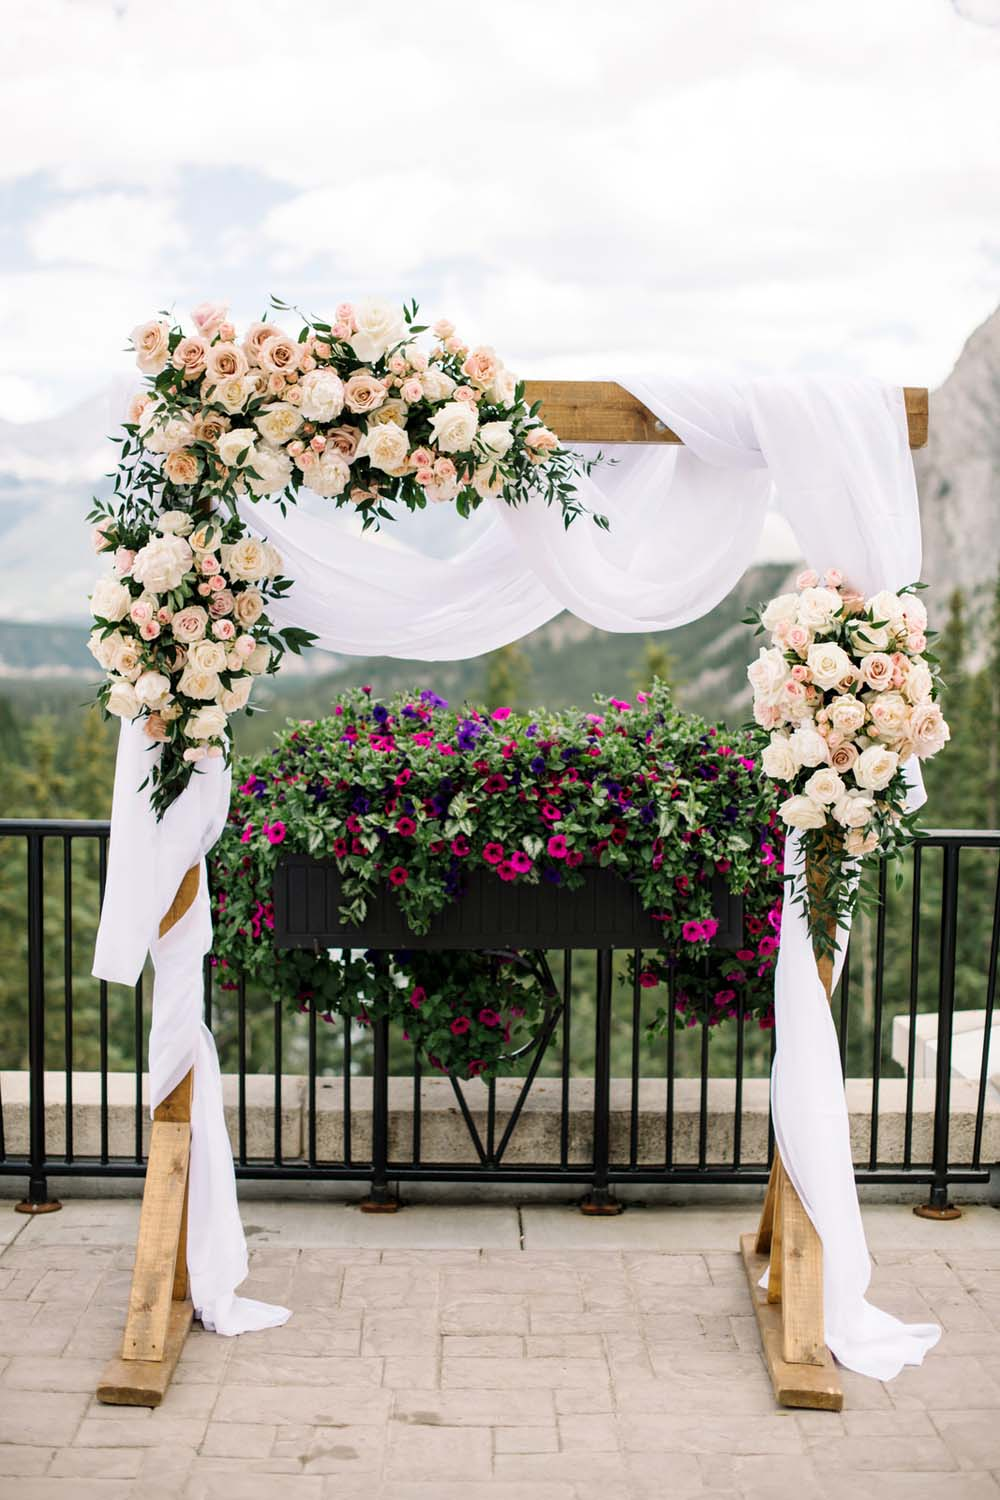 A Regal Fairytale Wedding in Banff, Alberta - Arch